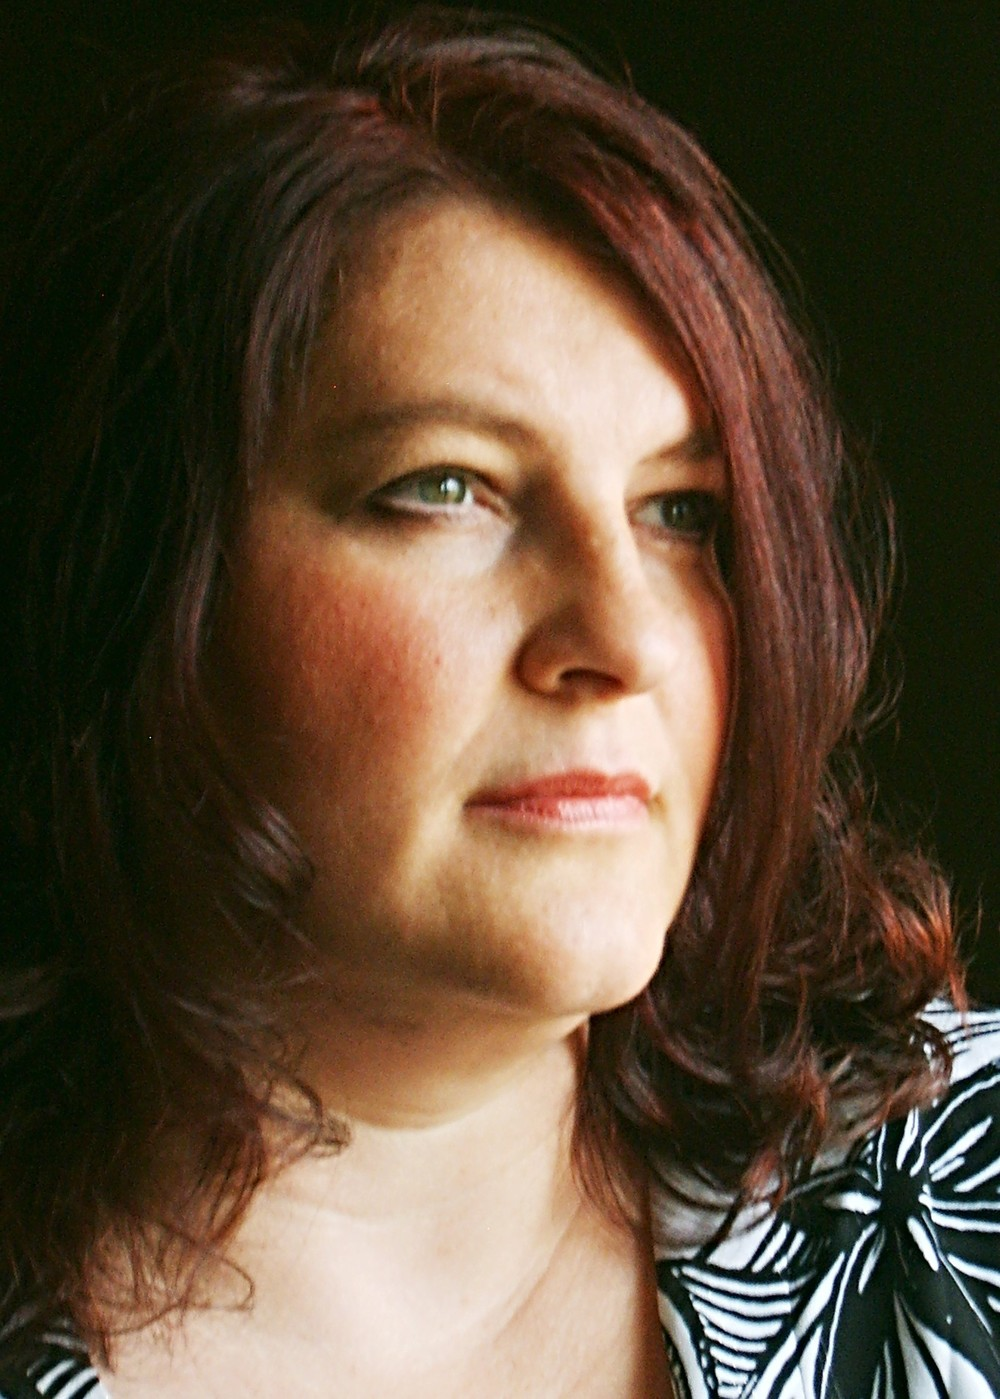 Darlene author photo.jpg